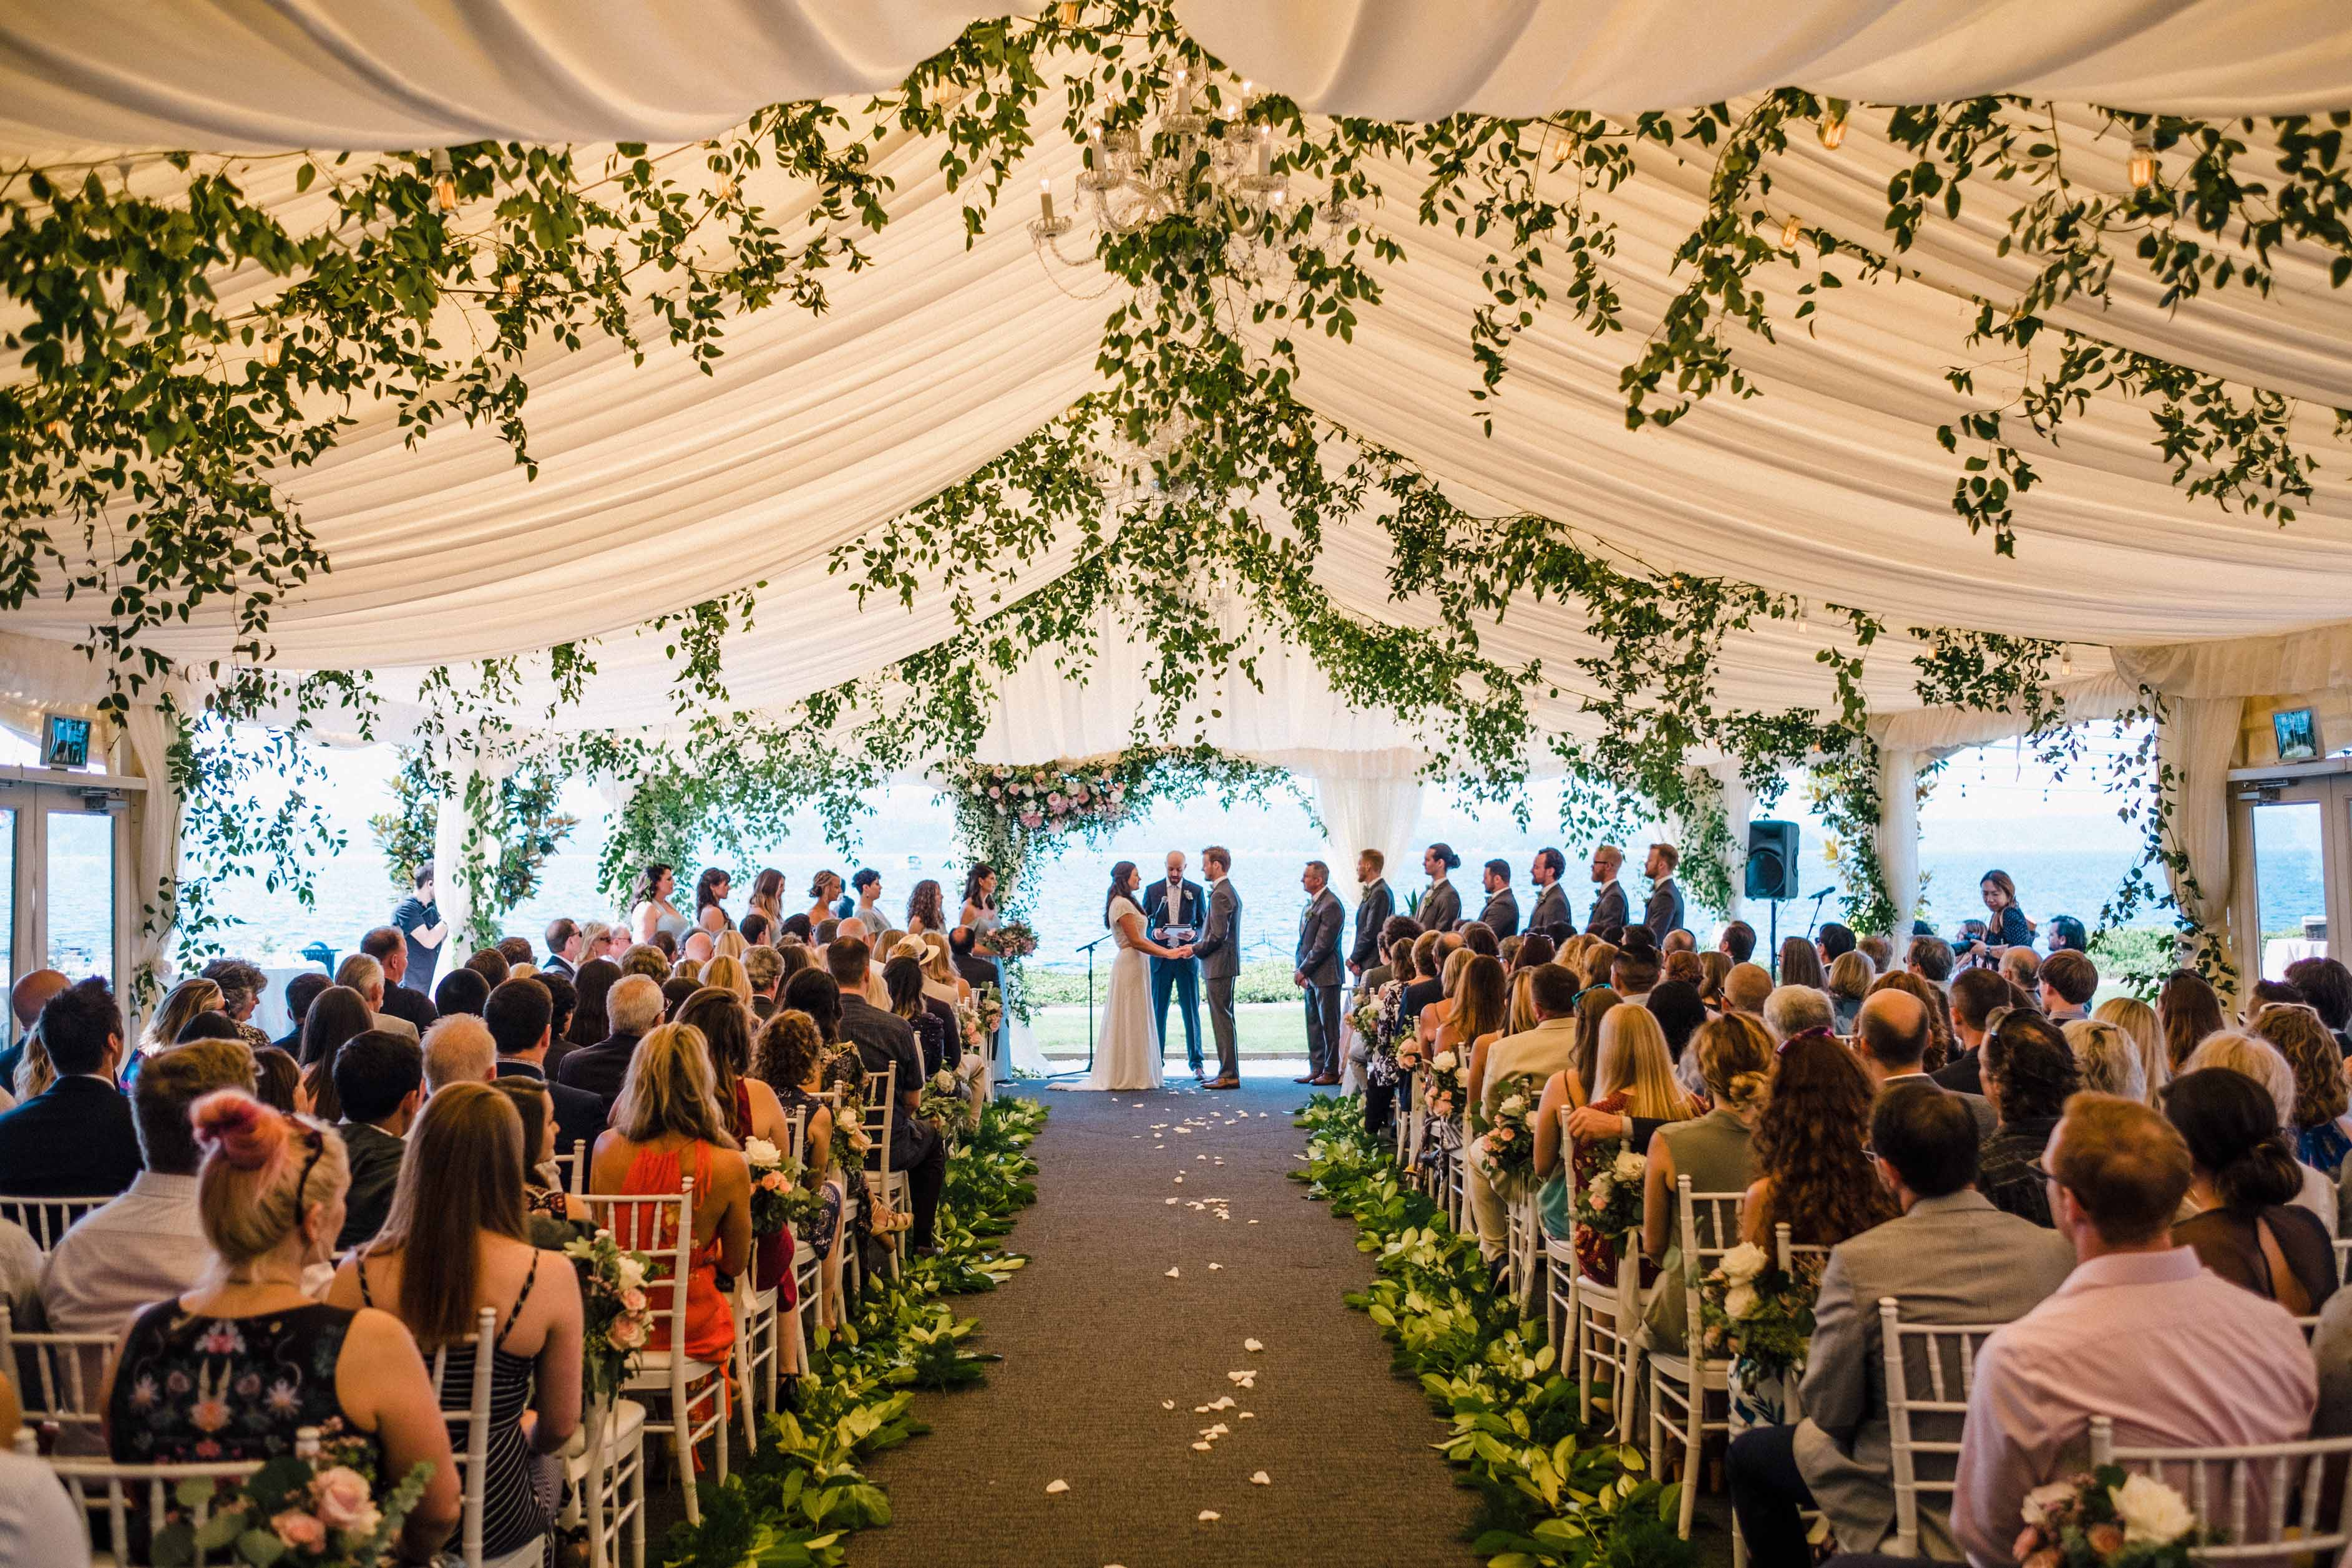 Wedding ceremony with lots of greenery in the tent ceiling at a Woodmark Hotel wedding, Flora Nova Design Seattle